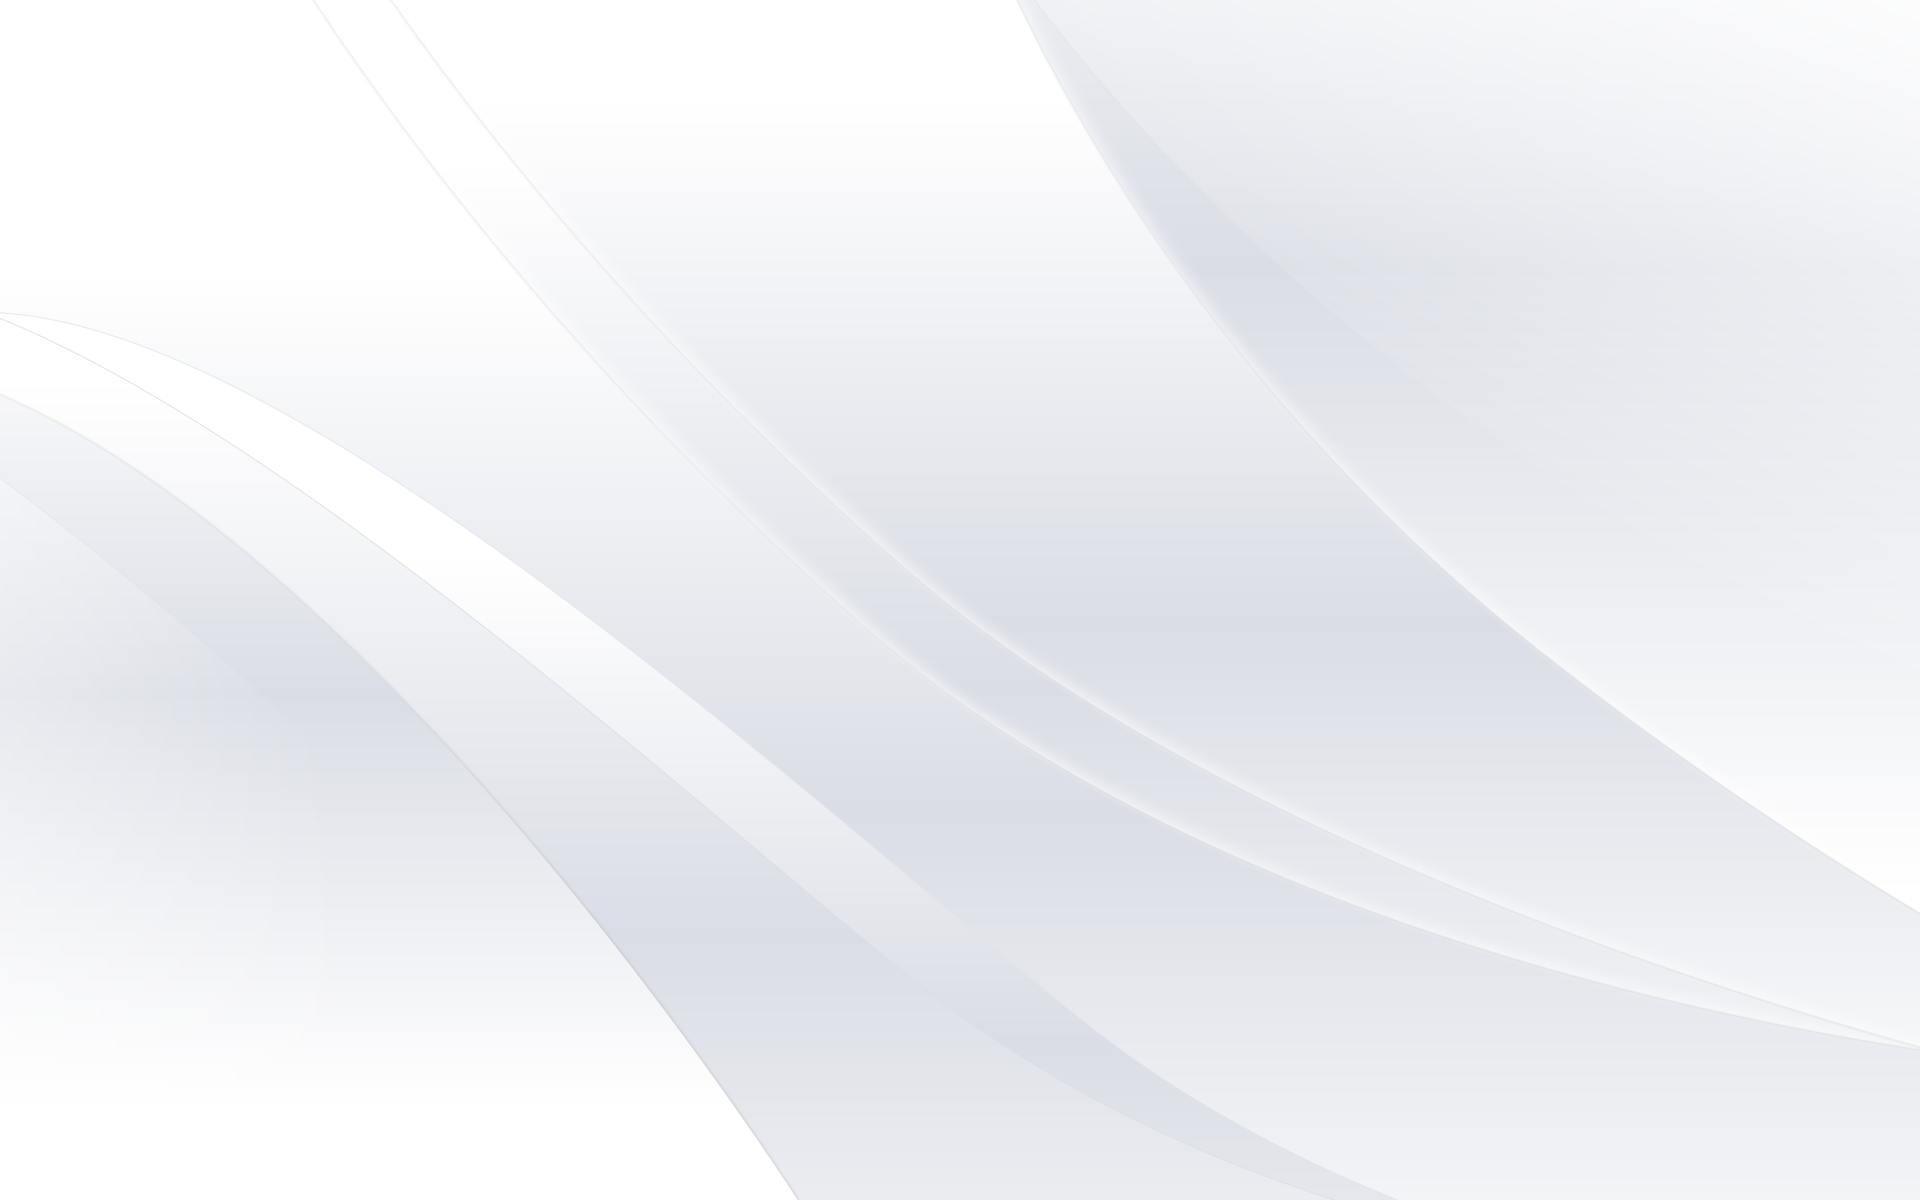 white-background-render-ds-max-wallpaper-hd-background